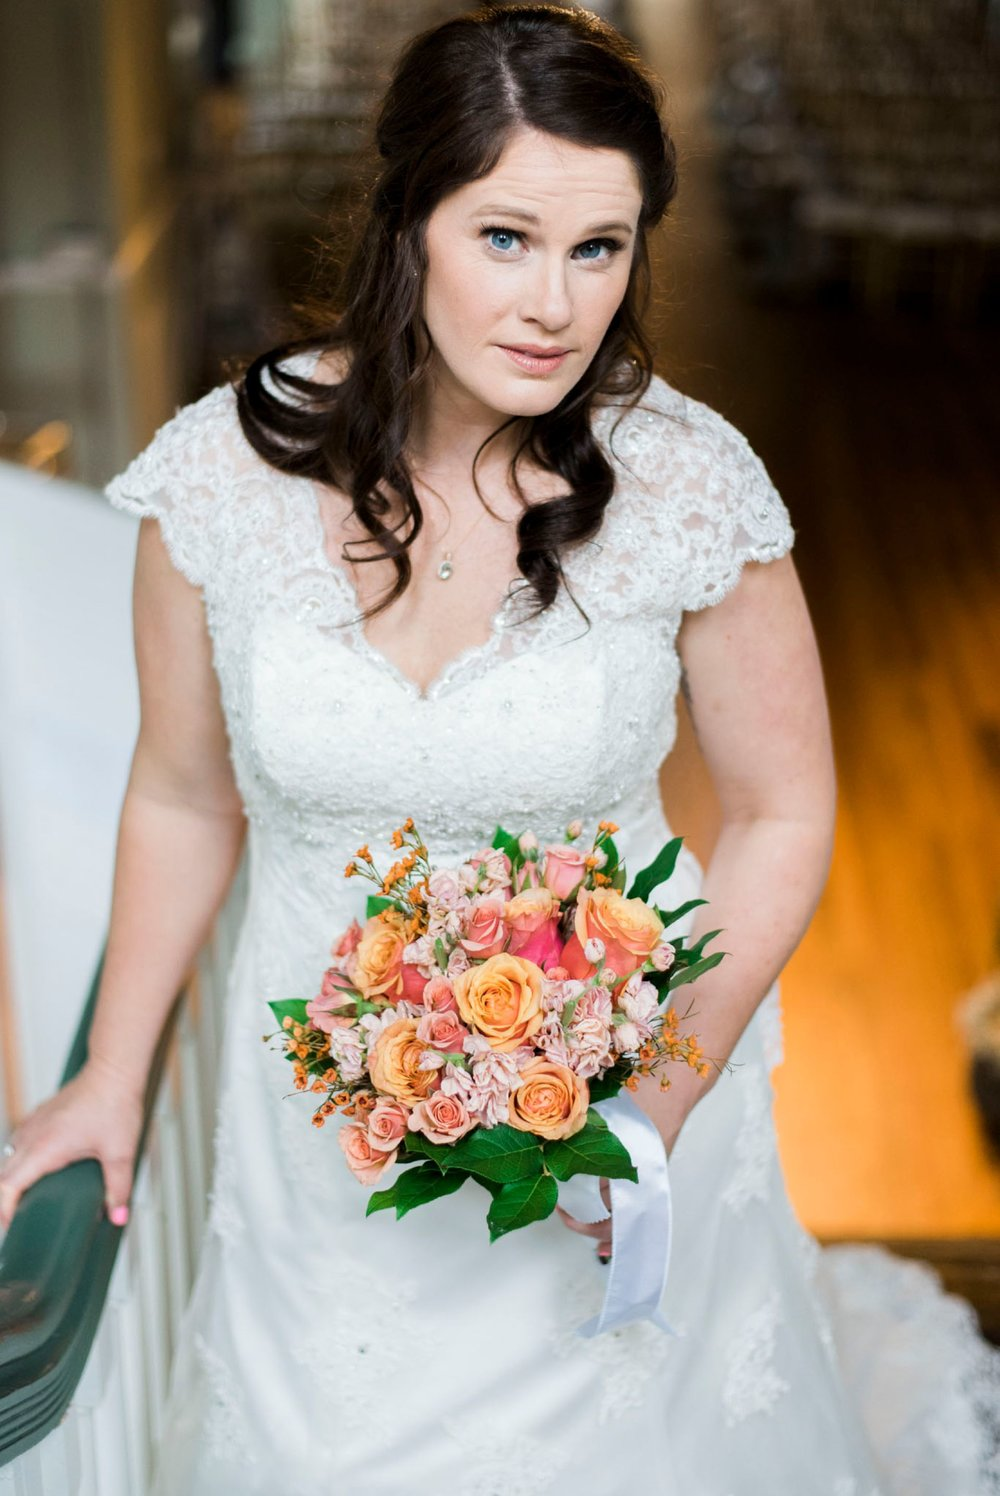 Trescaon8th_DowntownLynchburg_Virginiaweddingphotographer 29.jpg